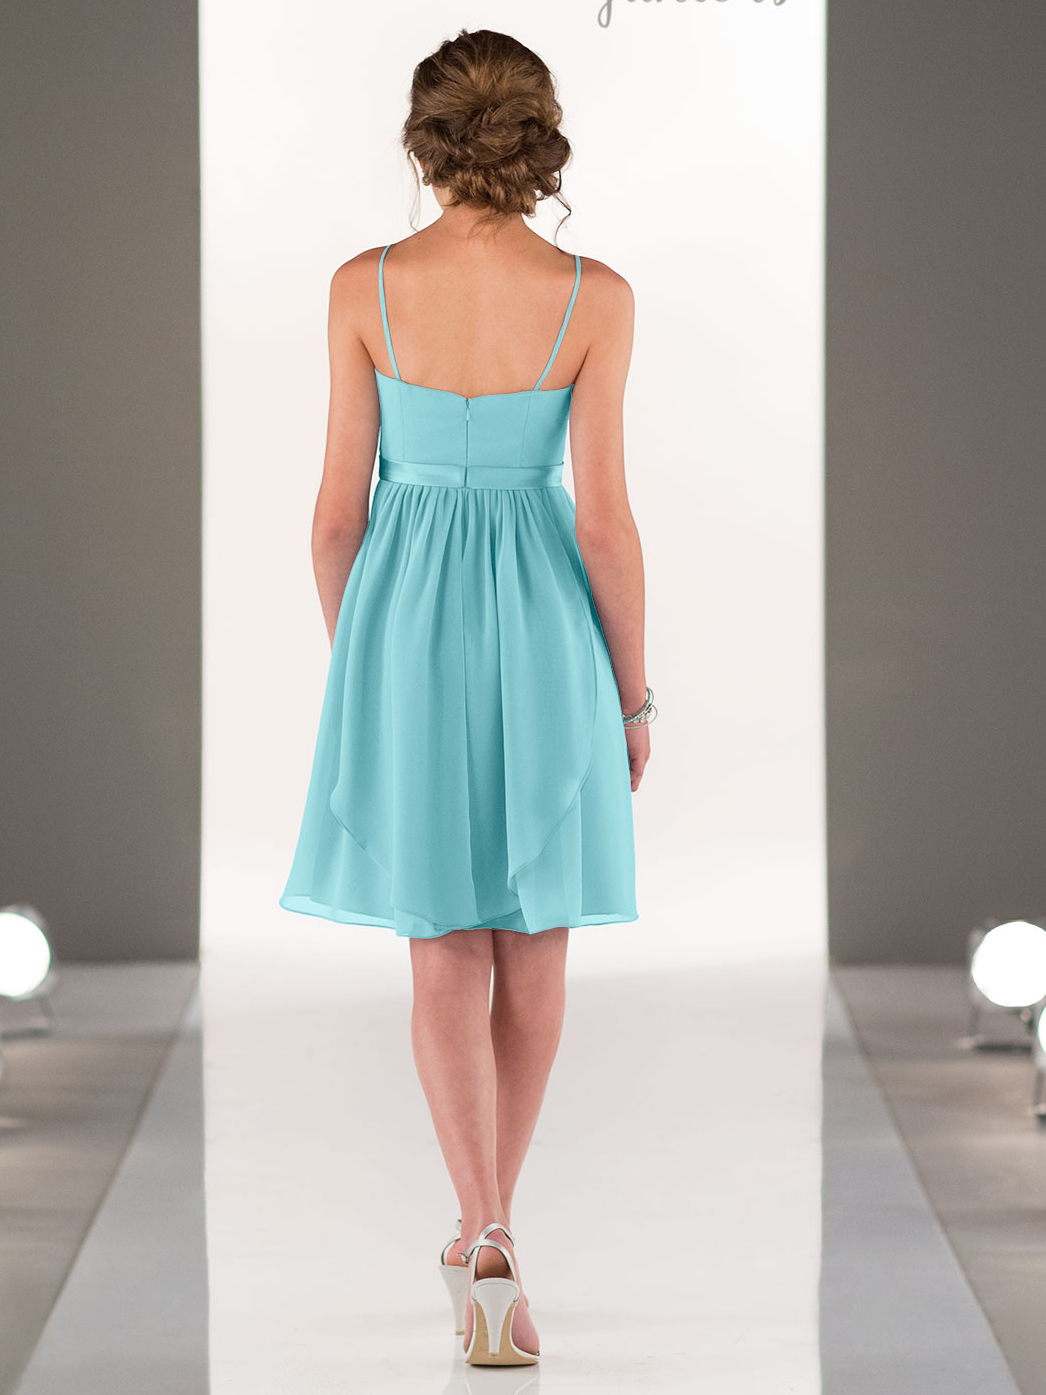 Sorella Vita J4009 Chiffon Short Juniors Bridesmaid Dress ...